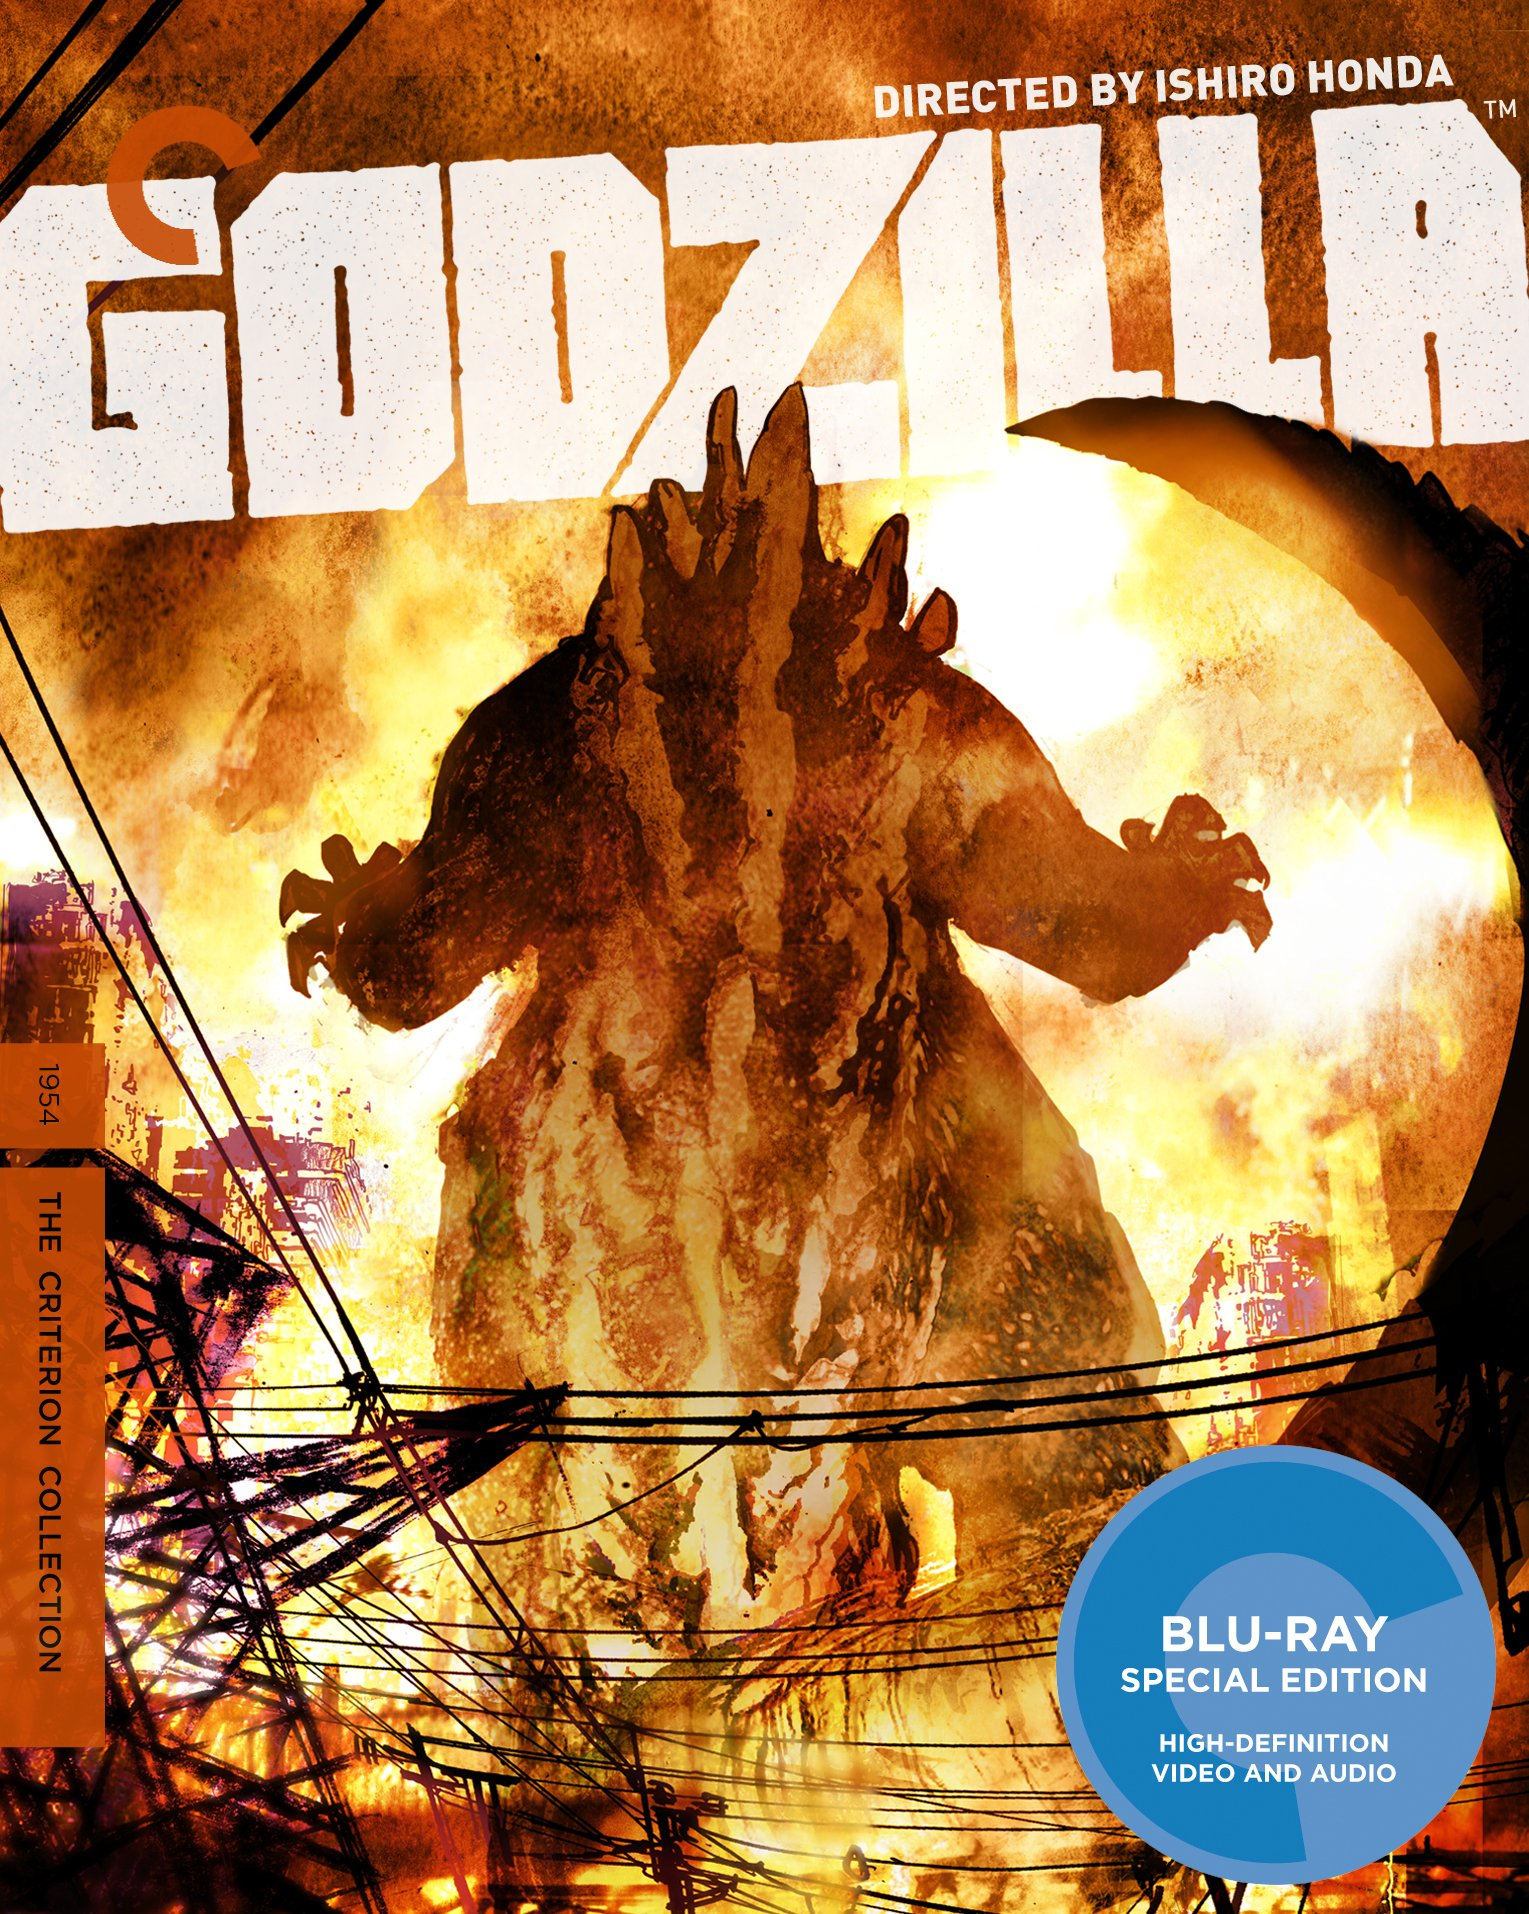 Godzilla (The Criterion Collection) [Blu-ray] by Criterion